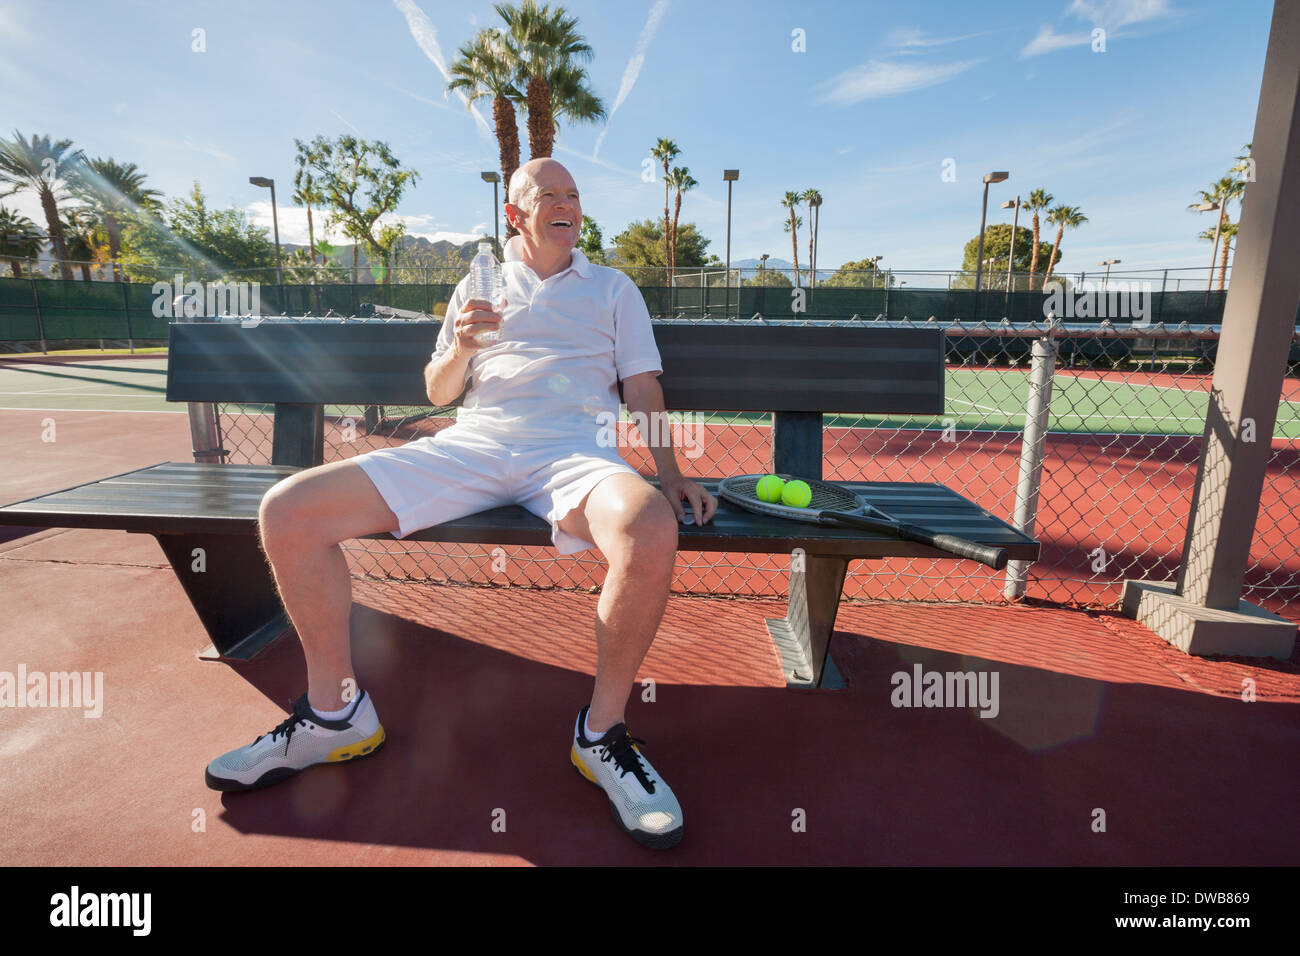 Happy senior male tennis player avec bouteille de l'eau assis sur un banc à la cour Photo Stock